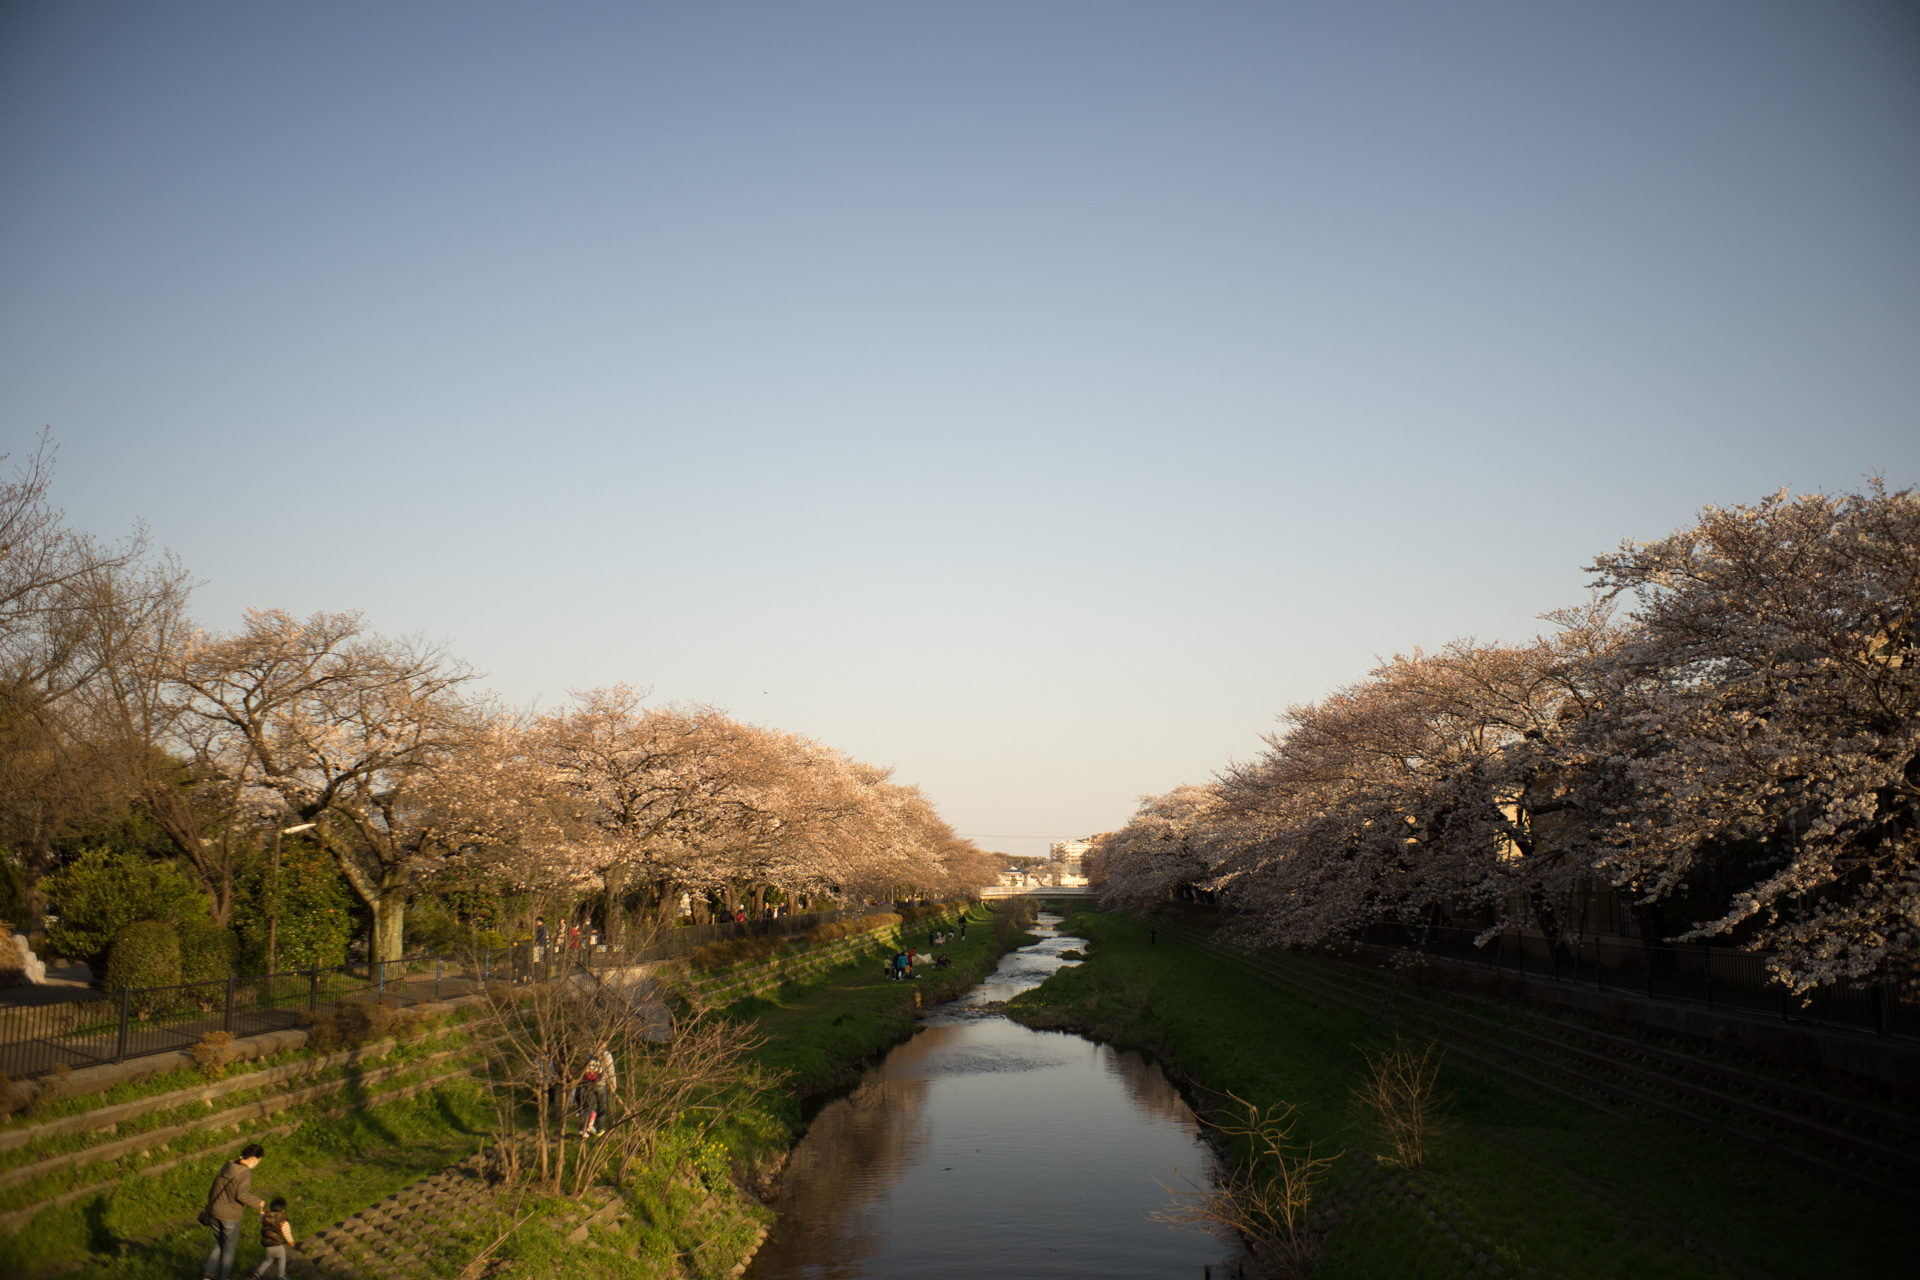 調布 野川 桜 SONY α7ⅱ, Super-Multi-Coated TAKUMAR 28mm F3.5